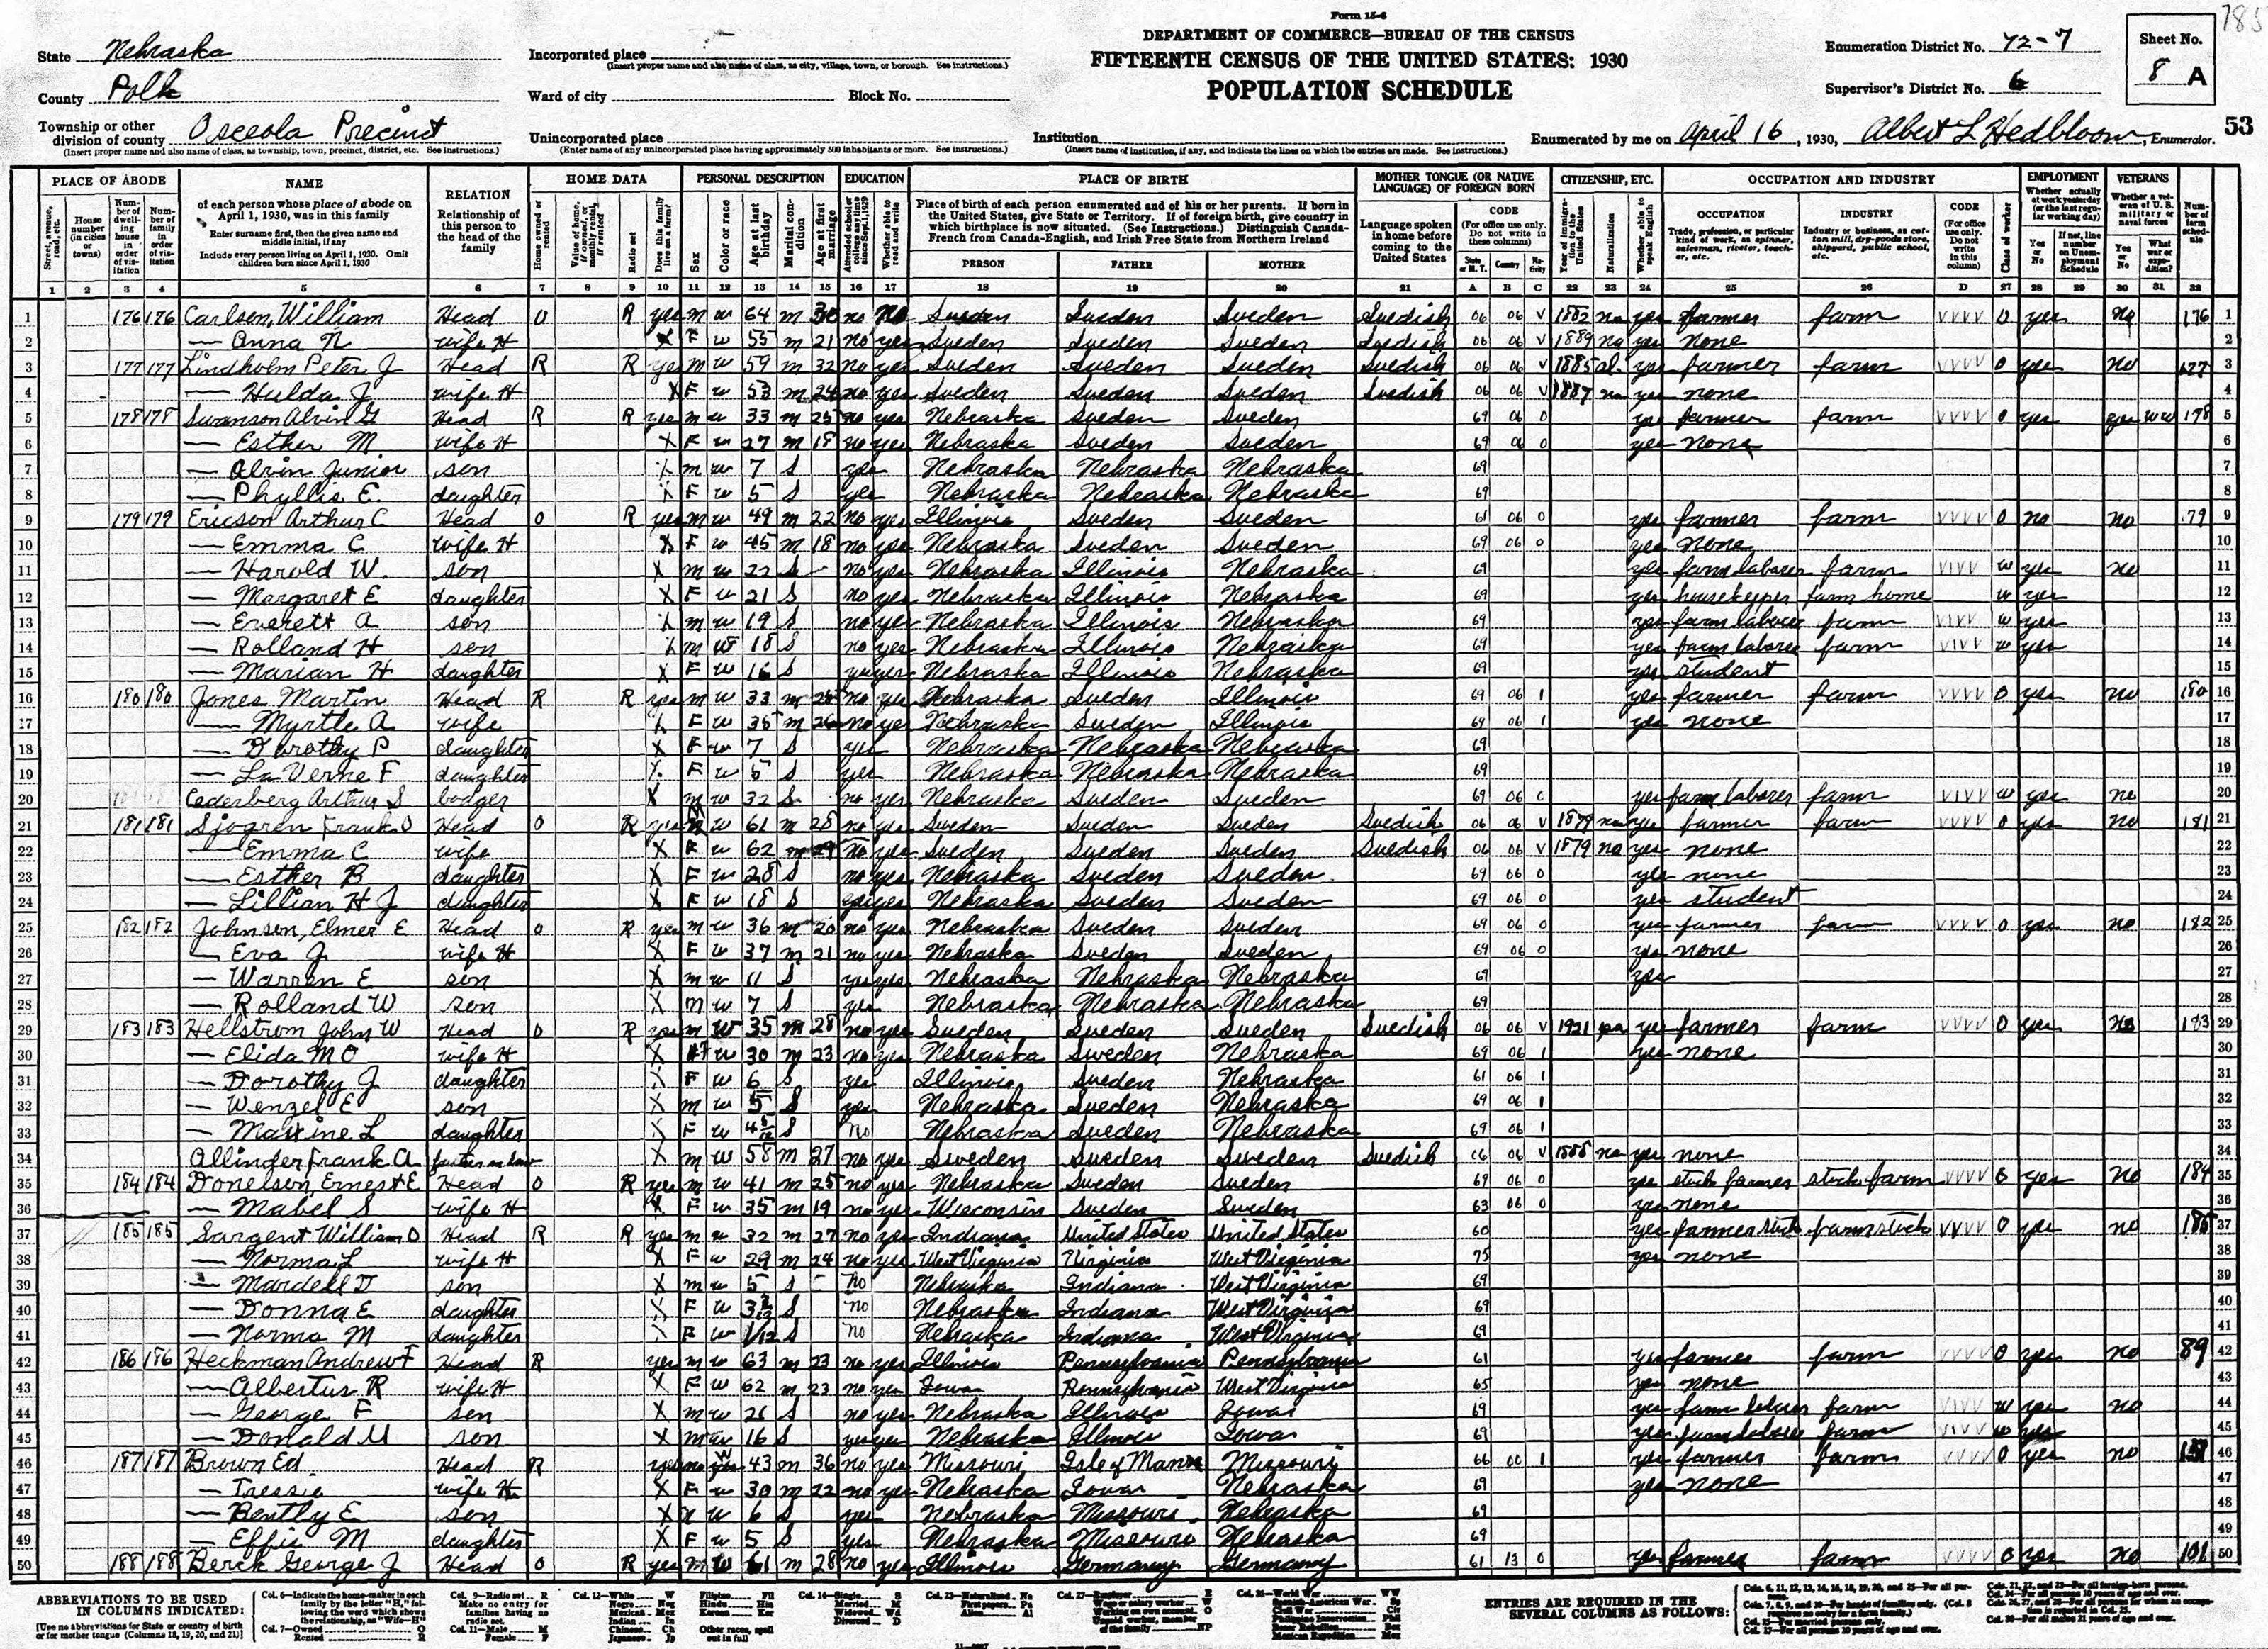 Wilbur Sargent - 1930 Census